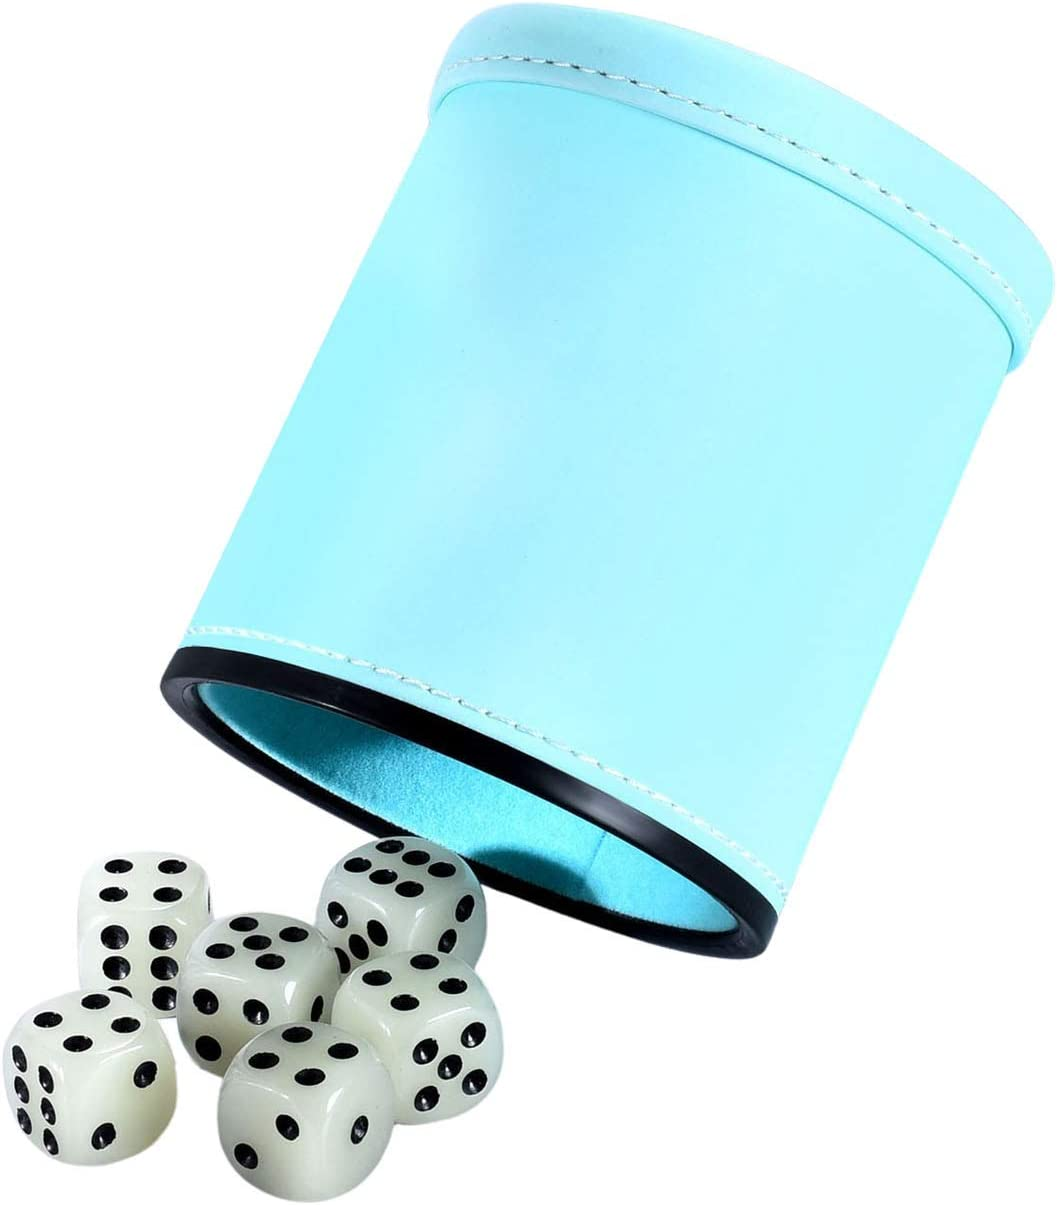 Glow in The Dark Dice Cup Felt Lined Pu Leather Shaker with Luminous Dice Quiet for Playing Yahtzee// Farkle// Liars Dice// Board Game 1 Pack